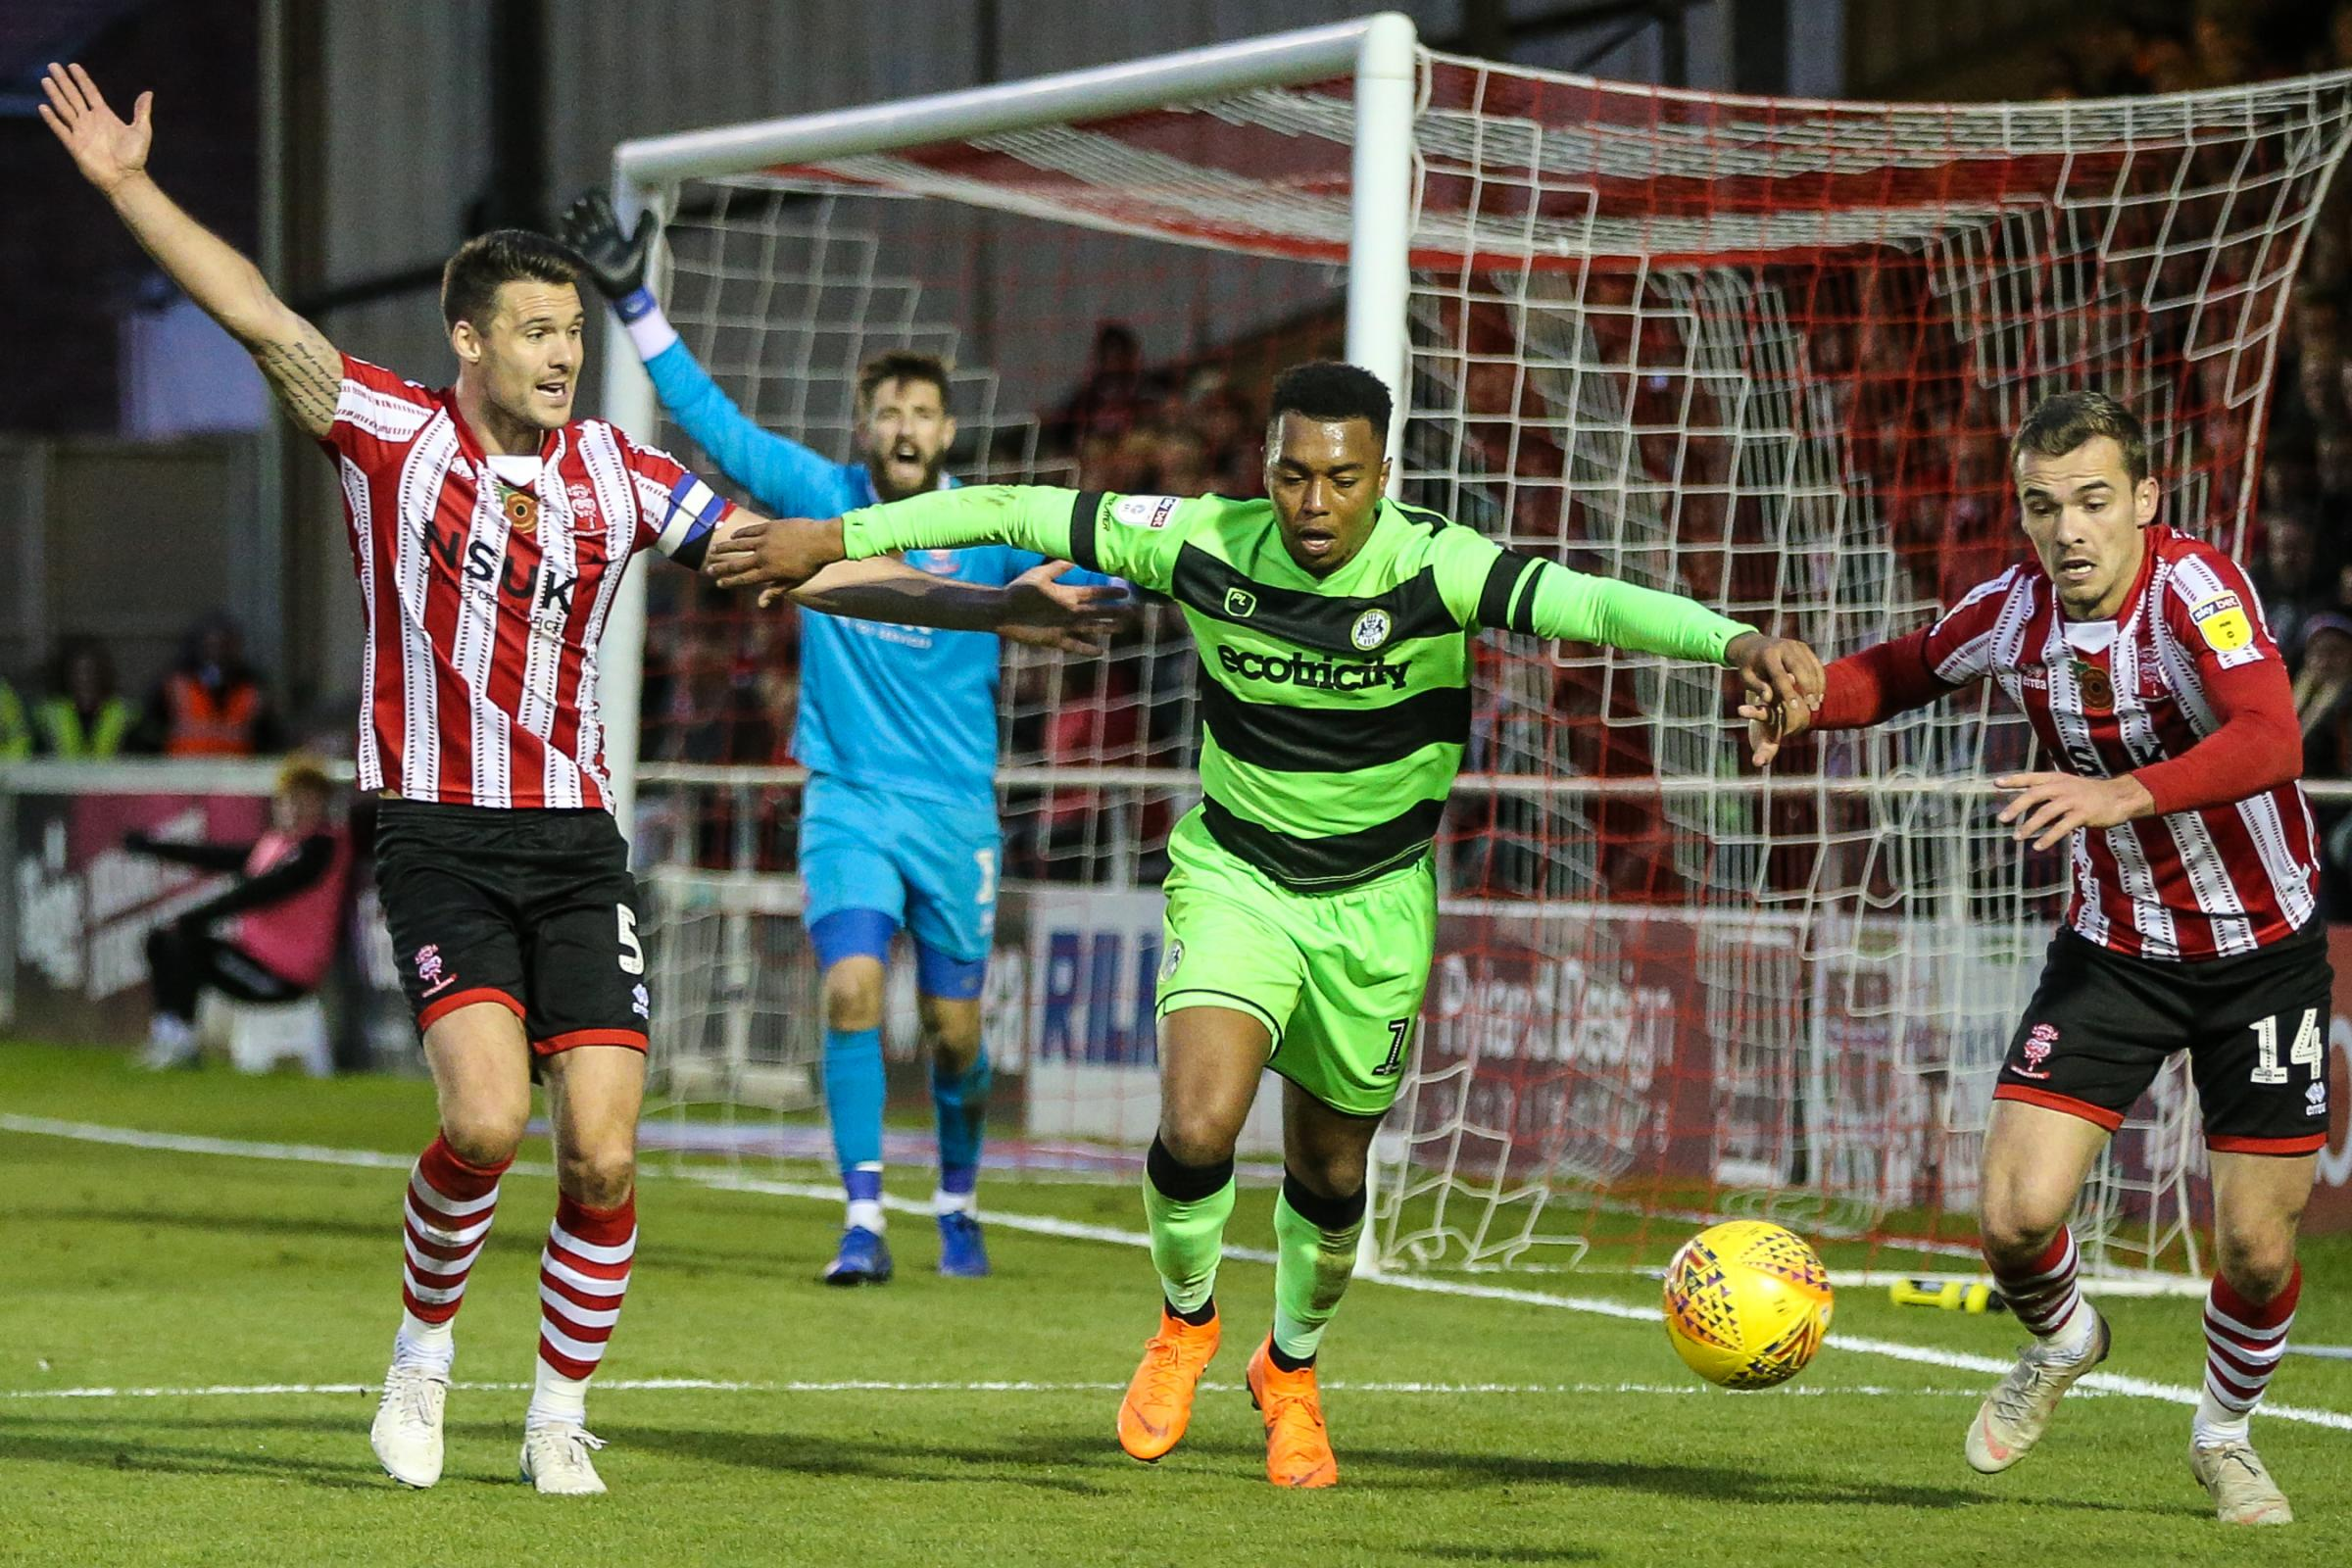 Forest Green Rovers Tahvon Campbell(14) during the EFL Sky Bet League 2 match between Lincoln City and Forest Green Rovers at Sincil Bank, Lincoln, United Kingdom on 3 November 2018.